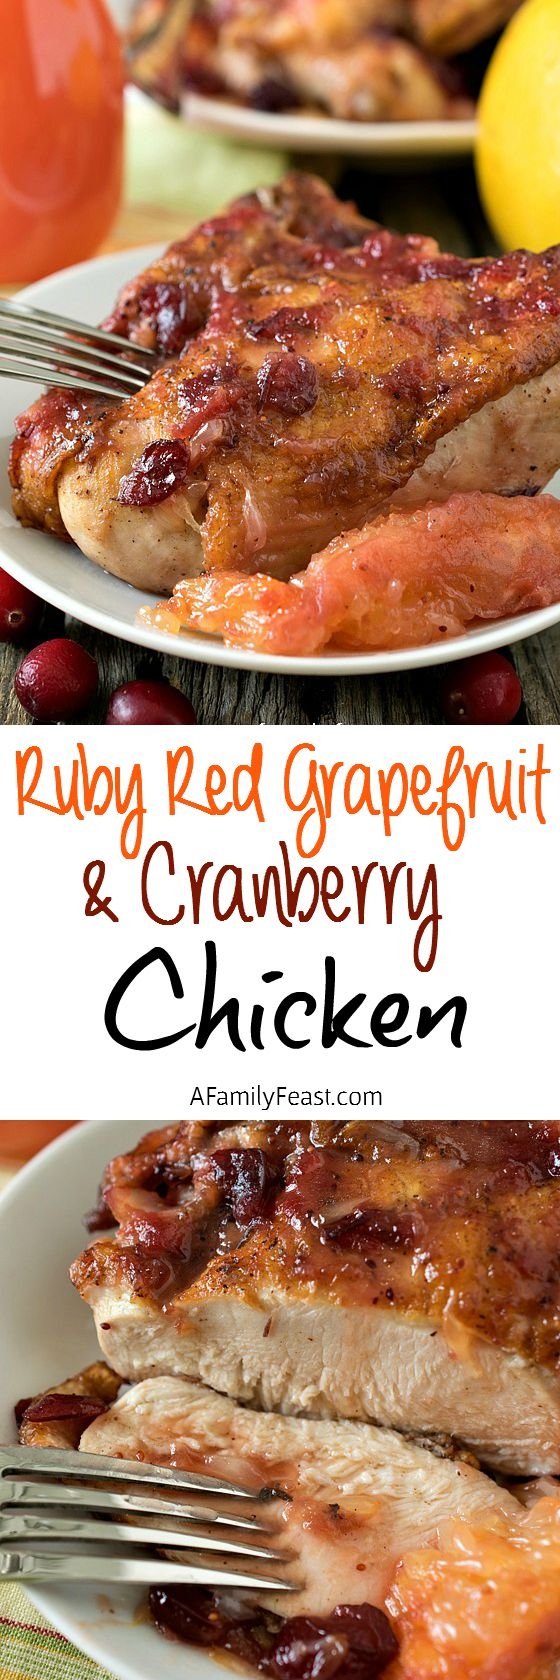 Ruby Red Grapefruit and Cranberry Chicken - Tender juicy chicken with a sweet-tart sauce. This chicken is fantastic and a great way to enjoy in-season cranberries.